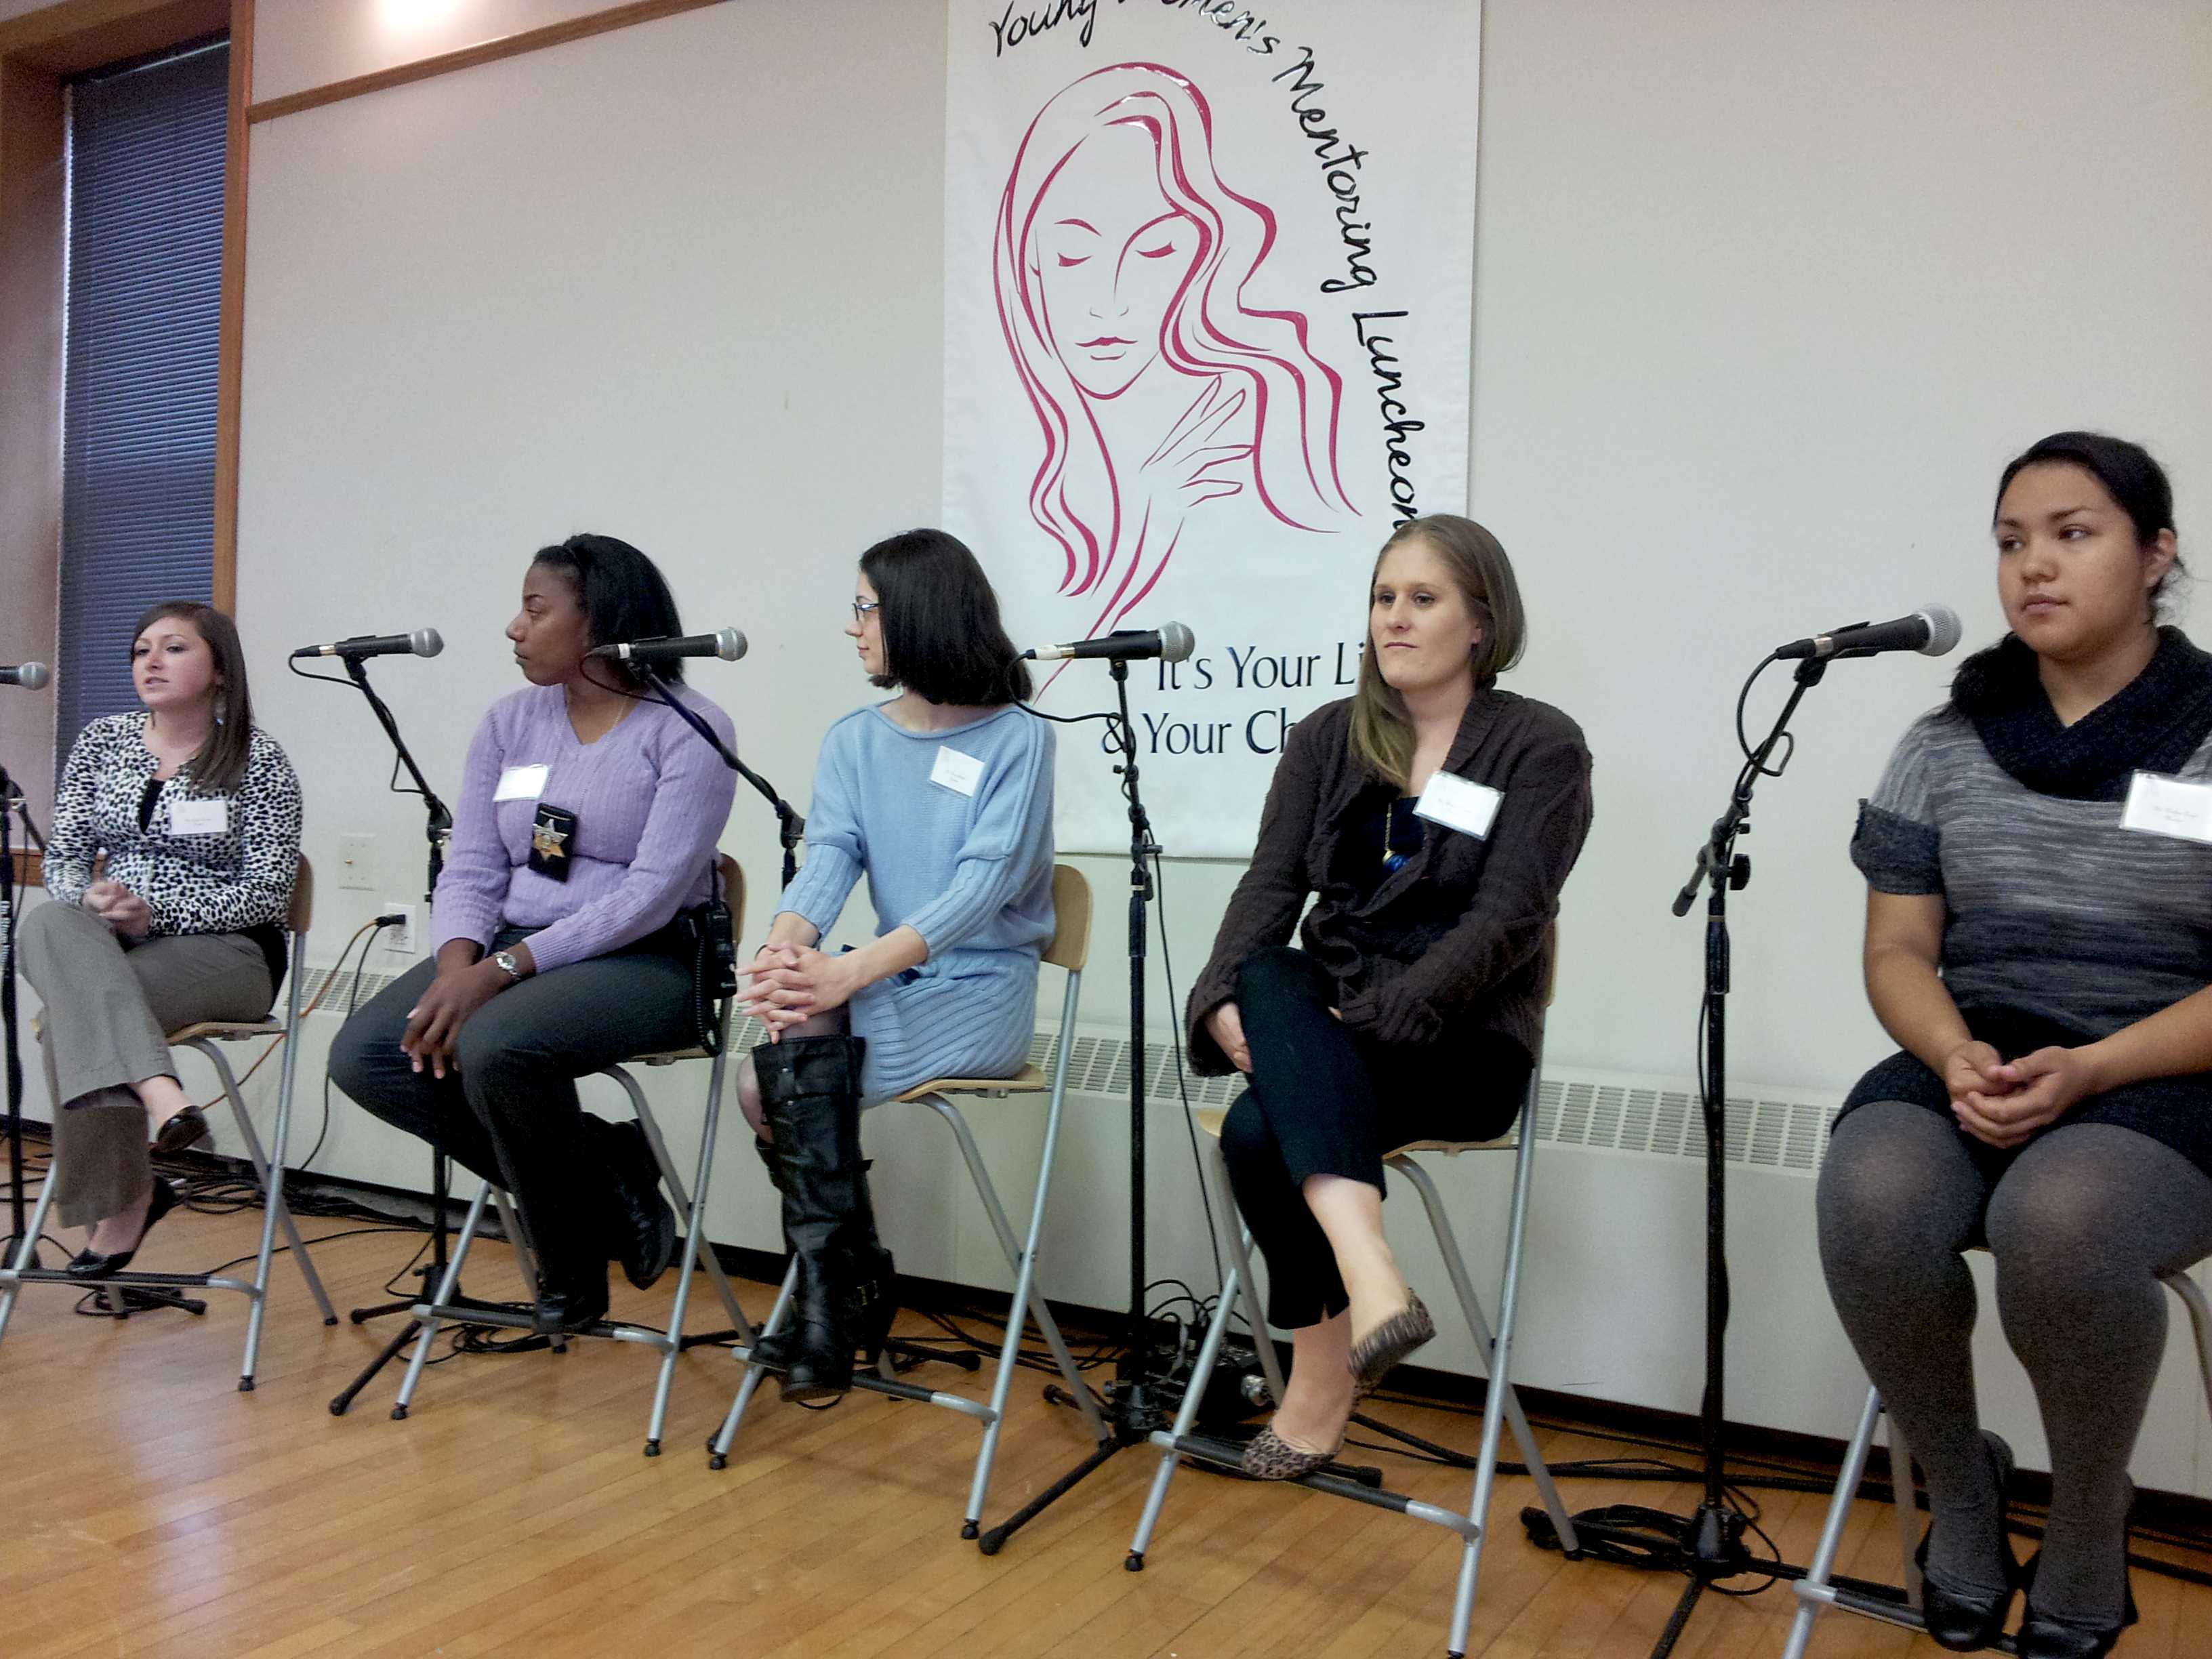 Panelists Jessica Gorman, Grace Carmichael, Dena Shibib, Christine Newton and Darlene Reyes speak to Evanston young women about health, friends, college and living well at the Young Women's Mentoring Luncheon at the Lorraine H. Morton Civic Center.